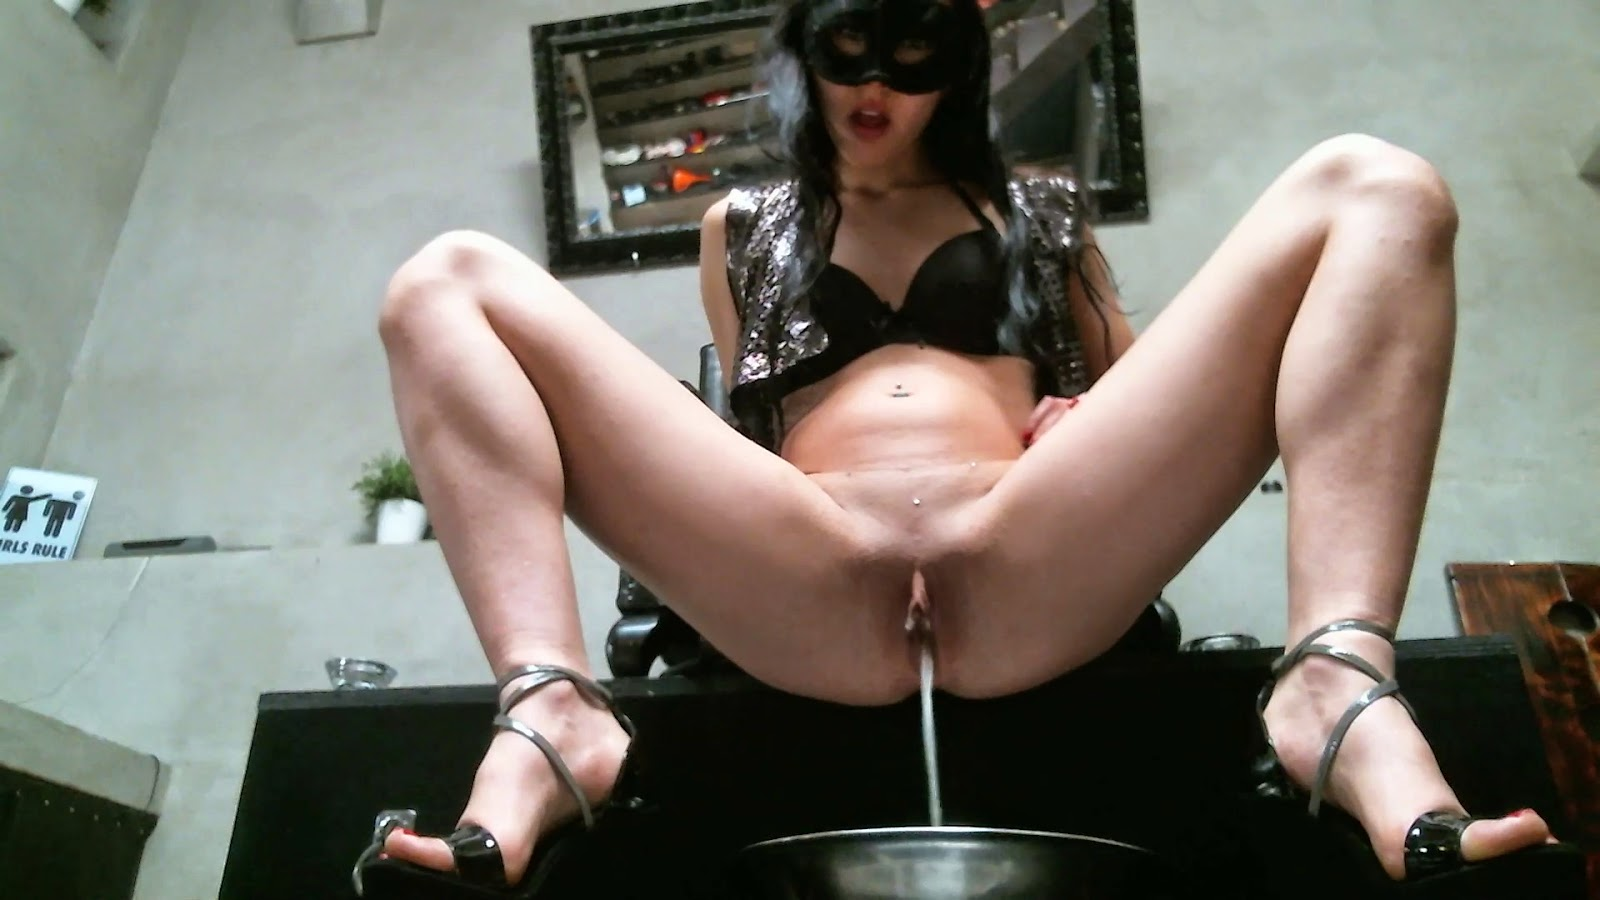 Mistress movie porn all clear